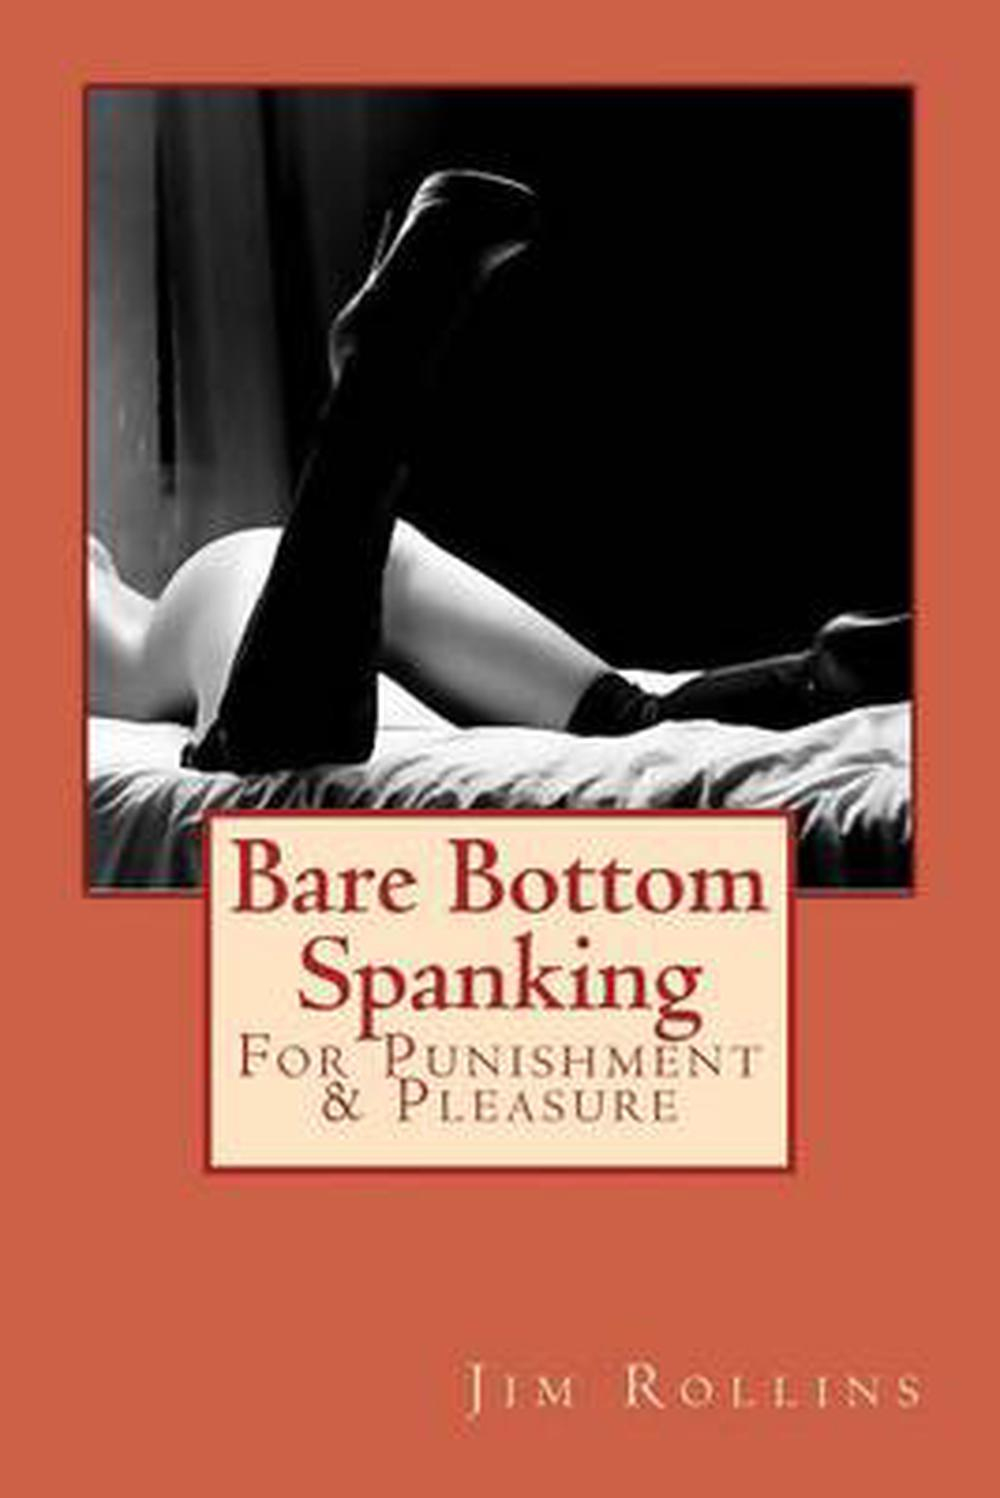 spank yourself bare bottom